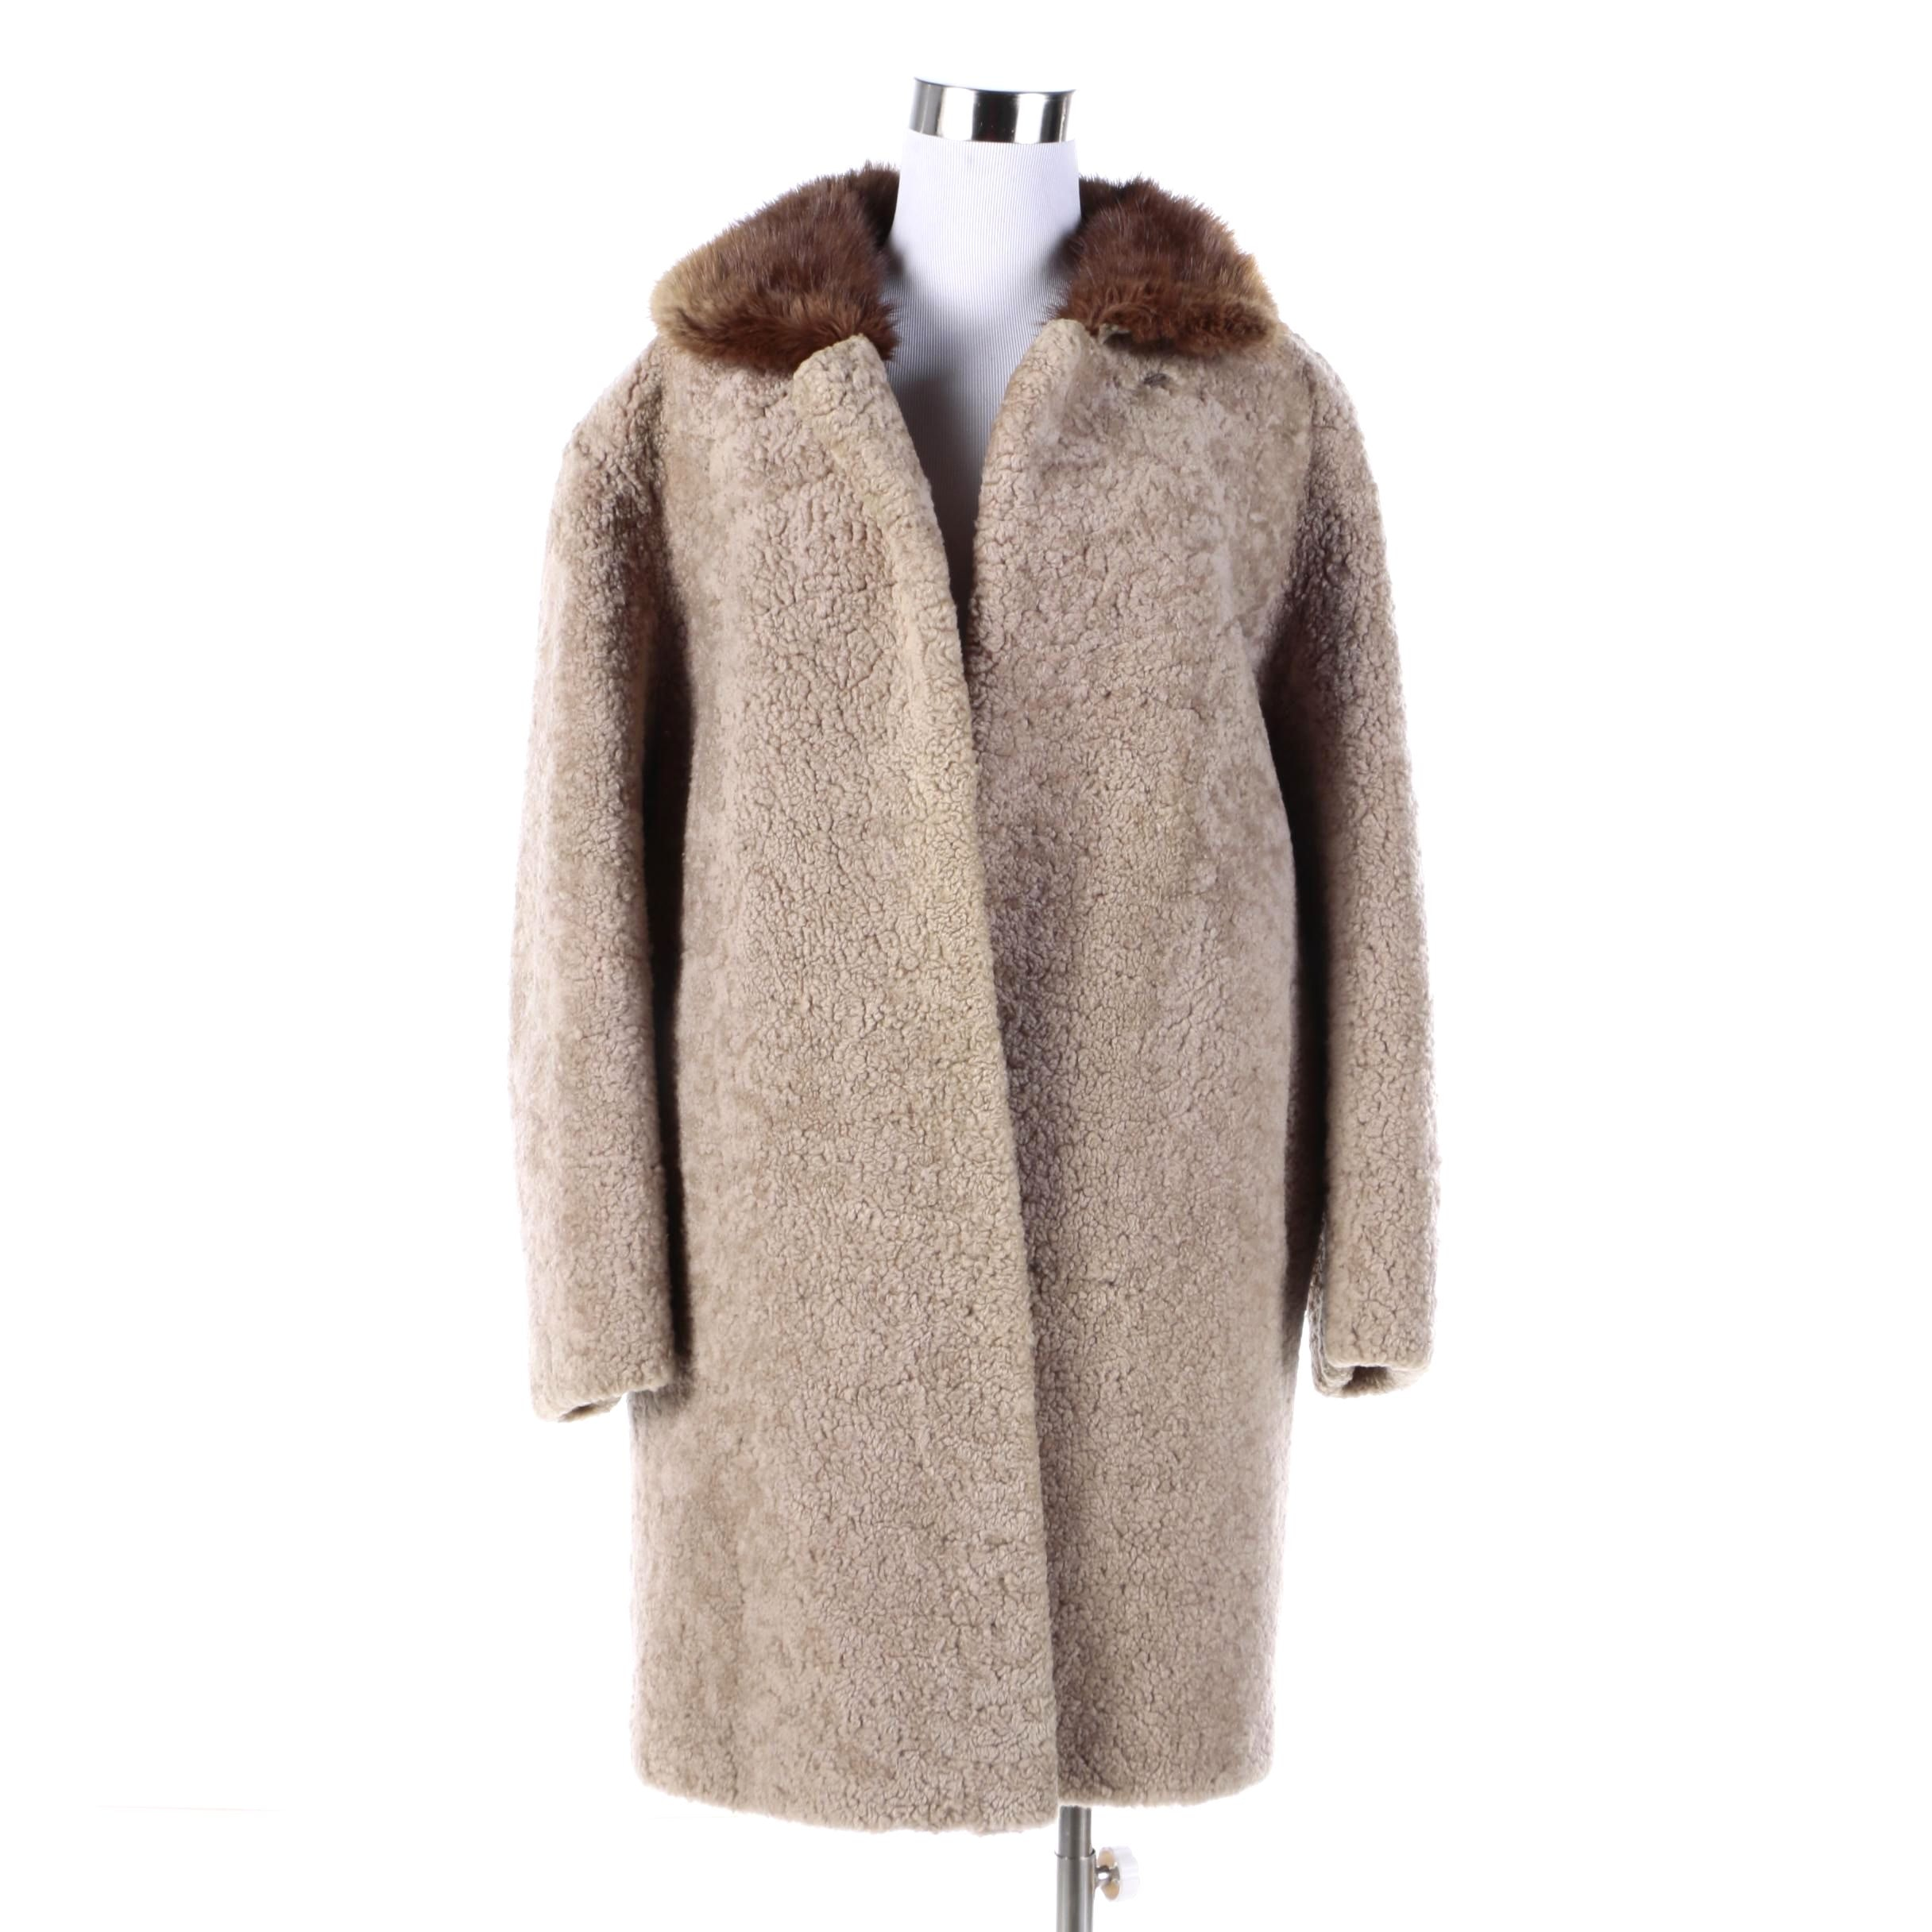 Women's Vintage Shearling Coat with Beaver Fur Collar